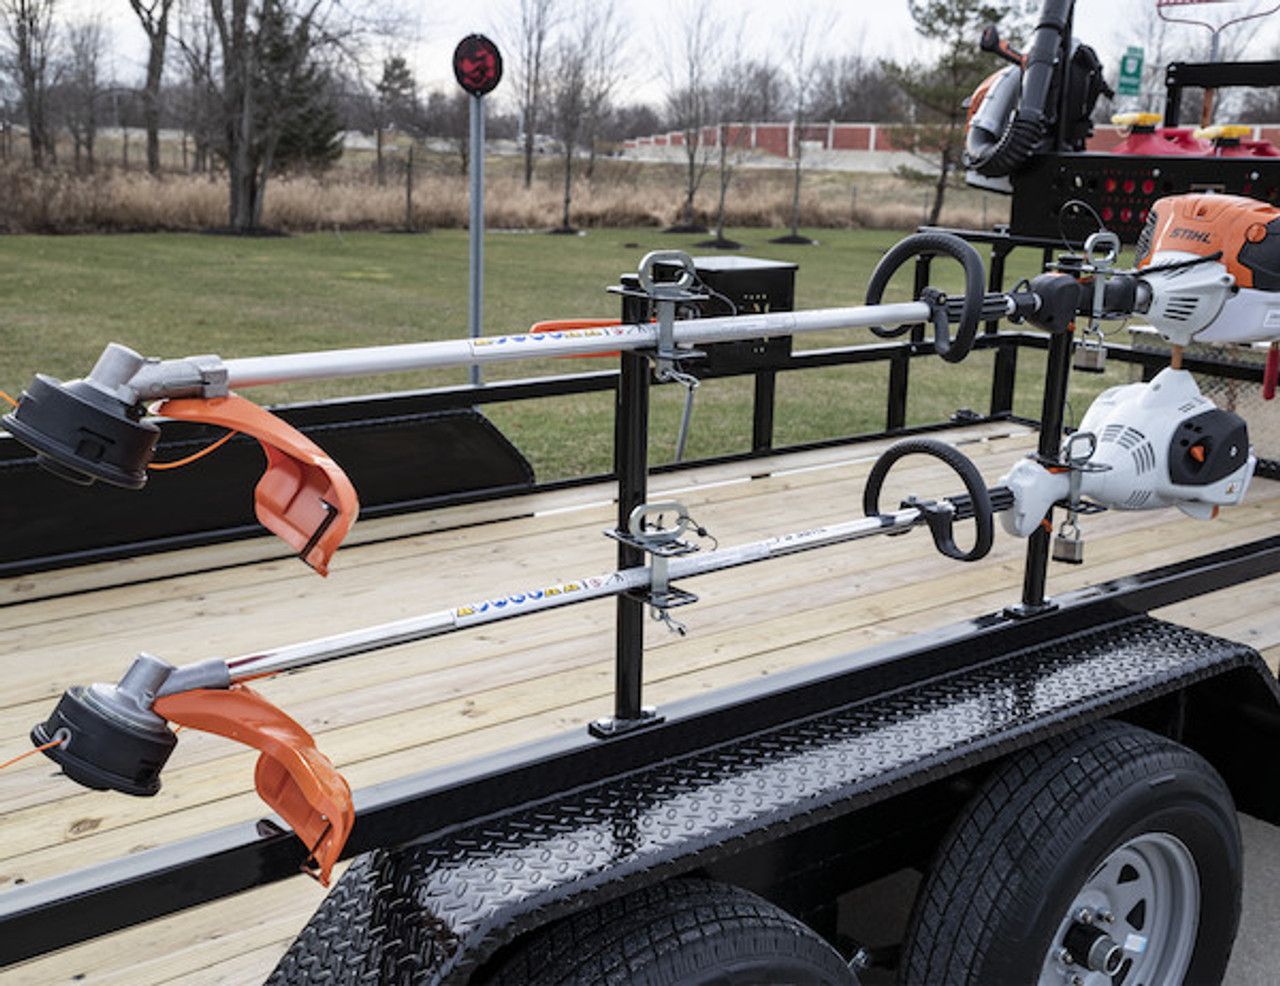 Buyers LT18 Lockable Trimmer Rack Carrier Holder for Up to 2 Trimmers for Trailers and Trucks Picture # 4